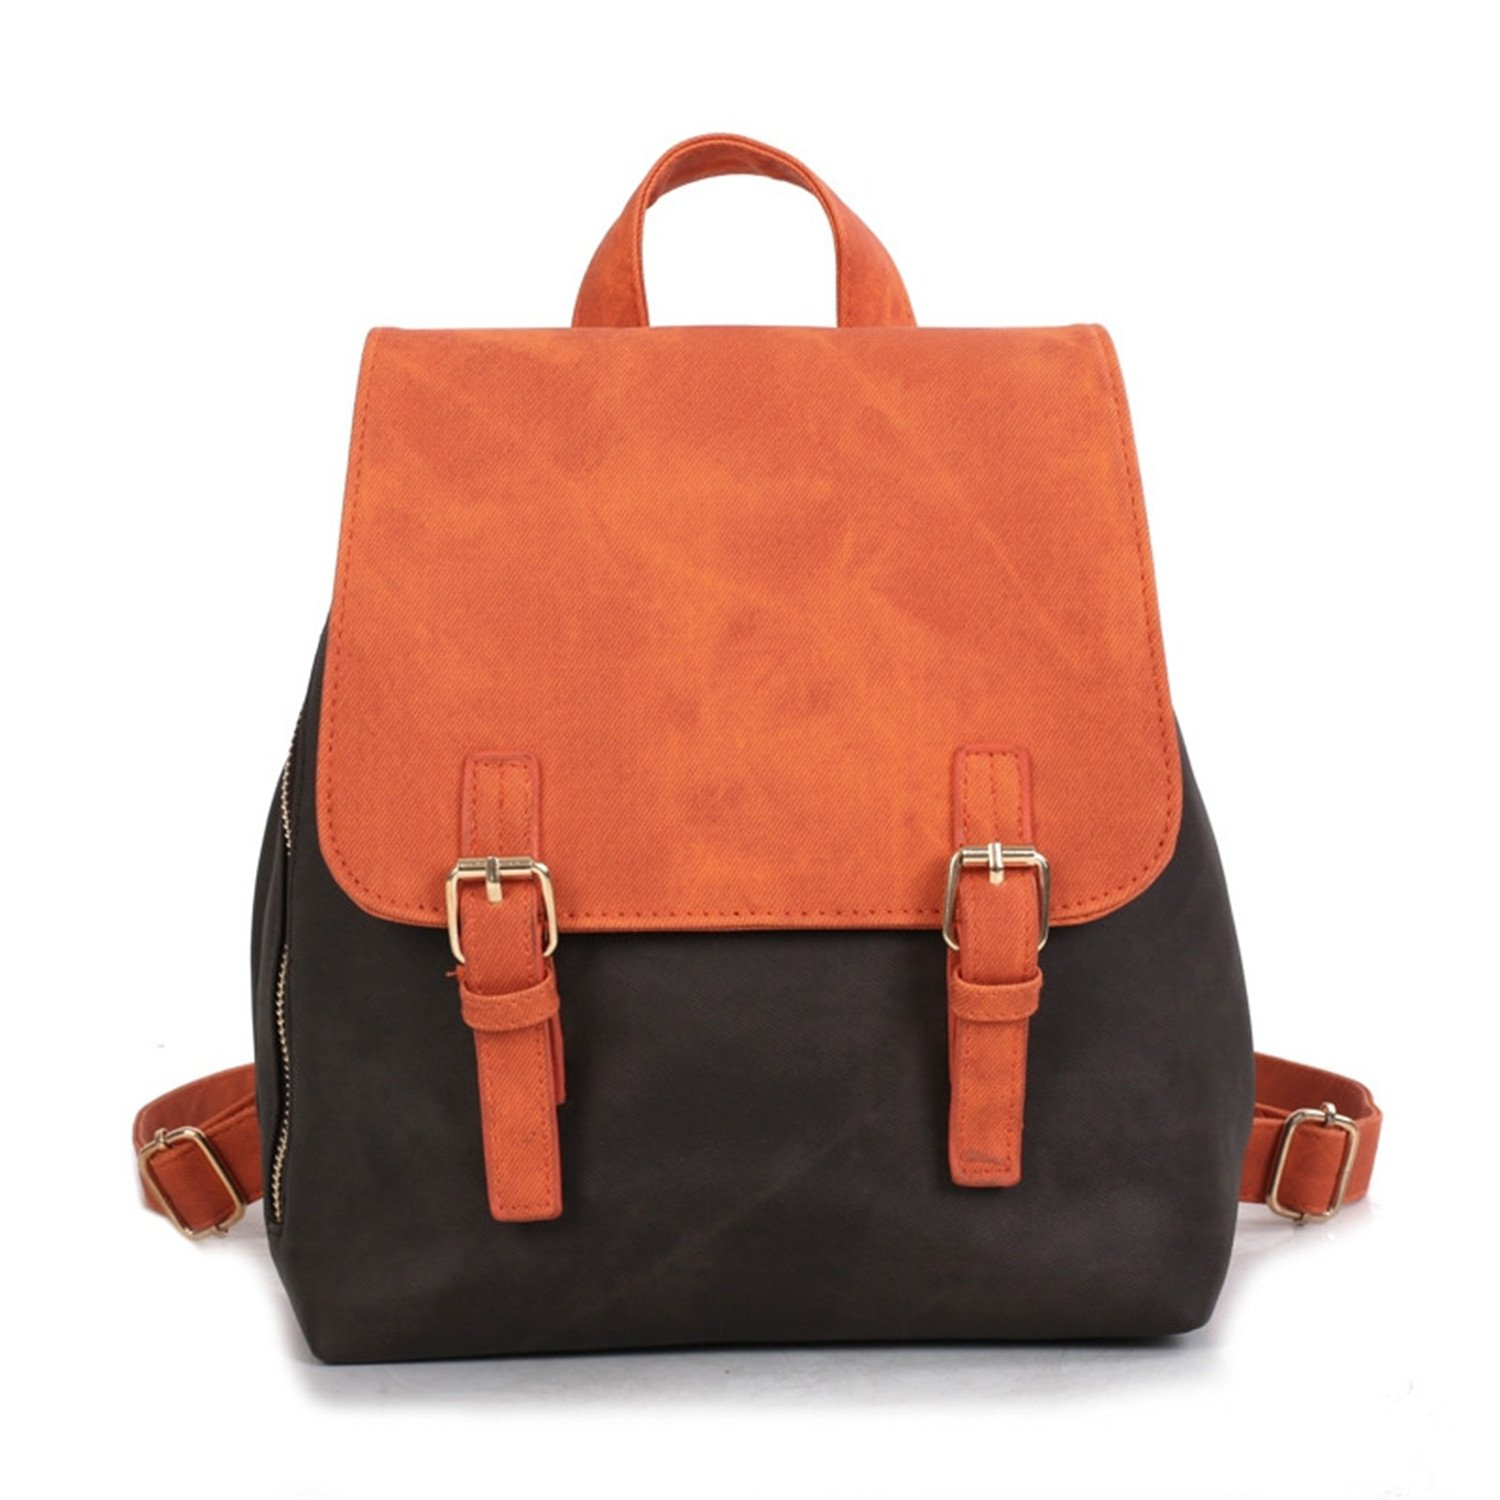 Amazon.com: Tyler Morrison Brand Women Pu Leather Backpacks Female School Bags For Girls Teenagers Small Backpack Rucksack Mochilas Sac A Dos Blue Small ...